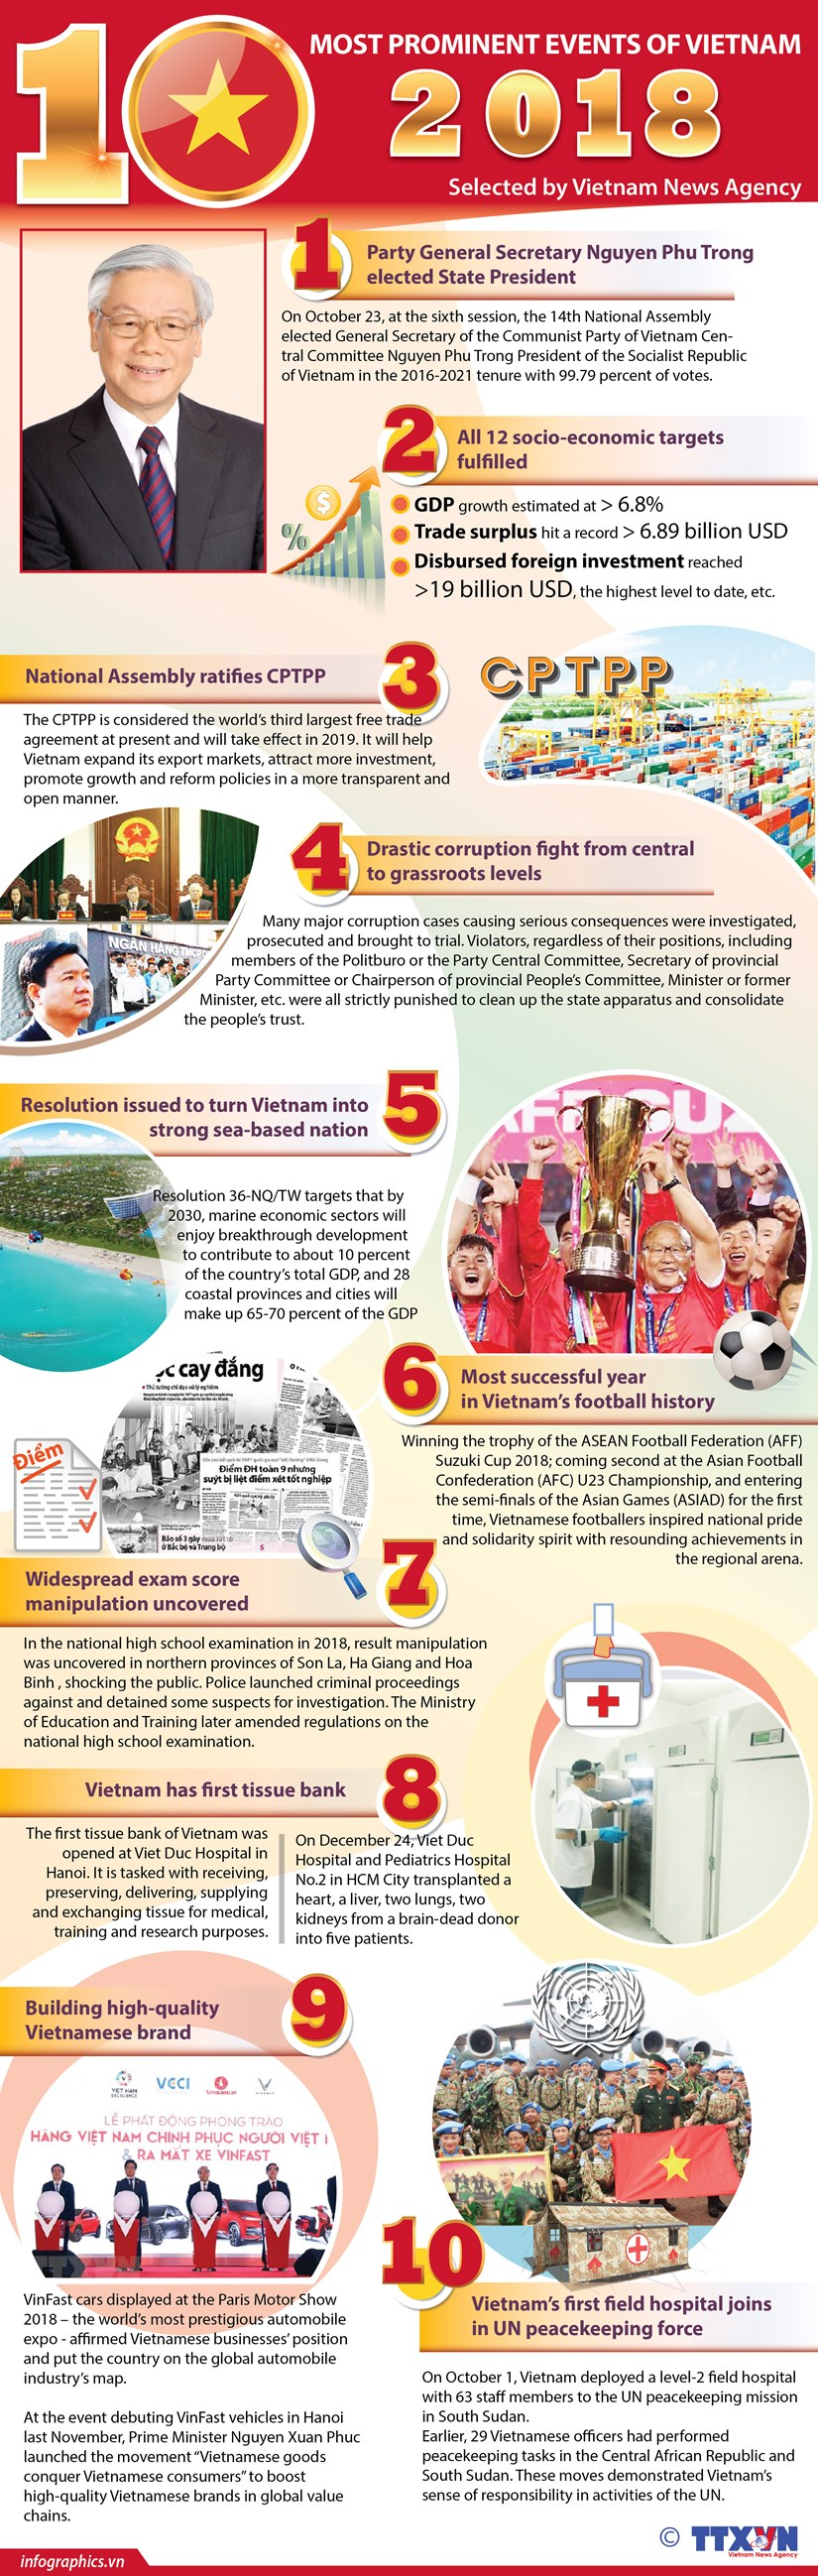 Top 10 events of Vietnam in 2018 hinh anh 1